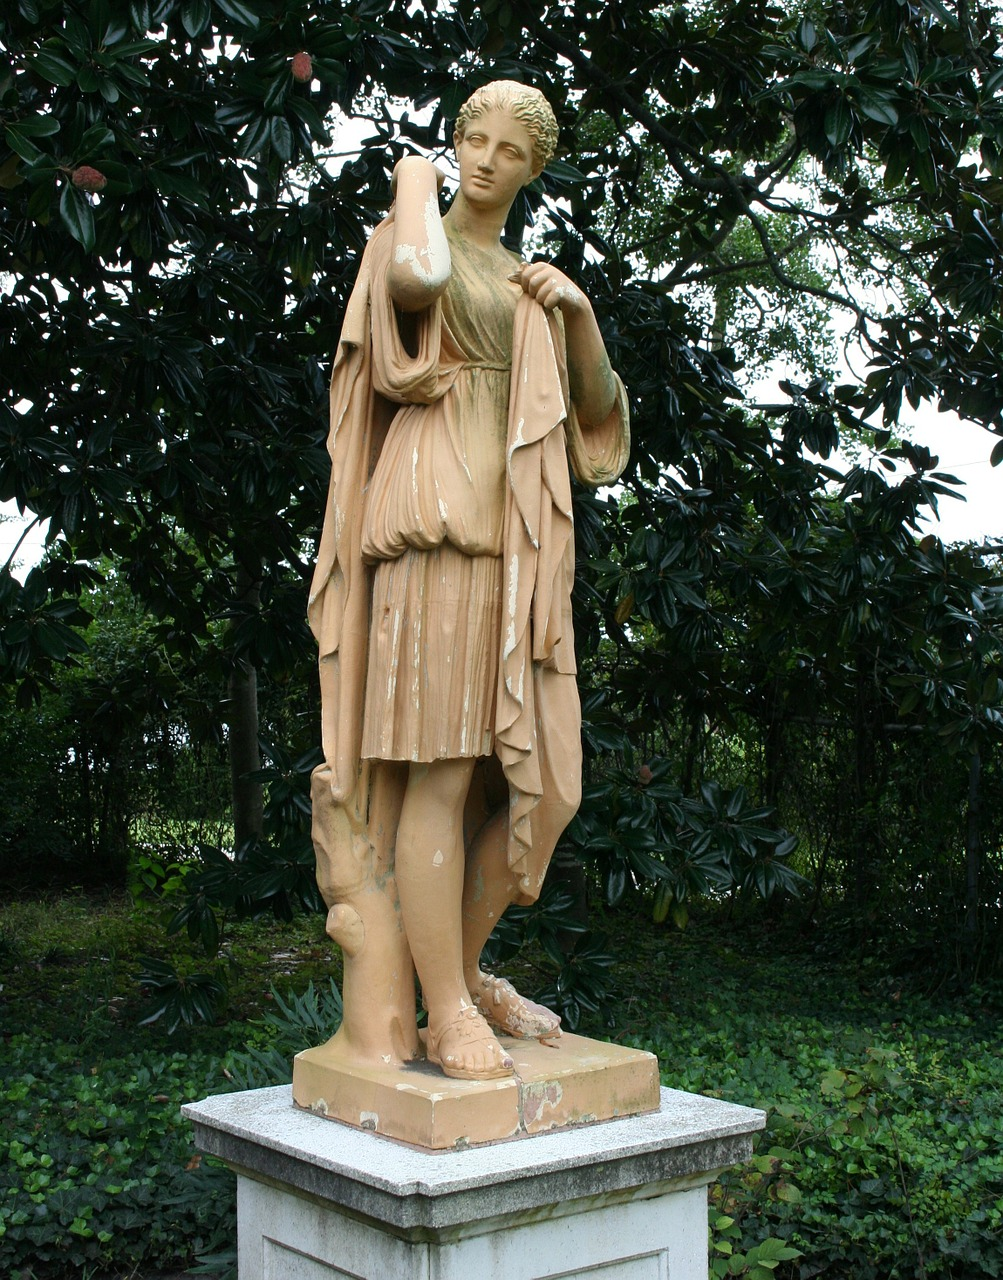 garden statue sculpture terracotta free photo